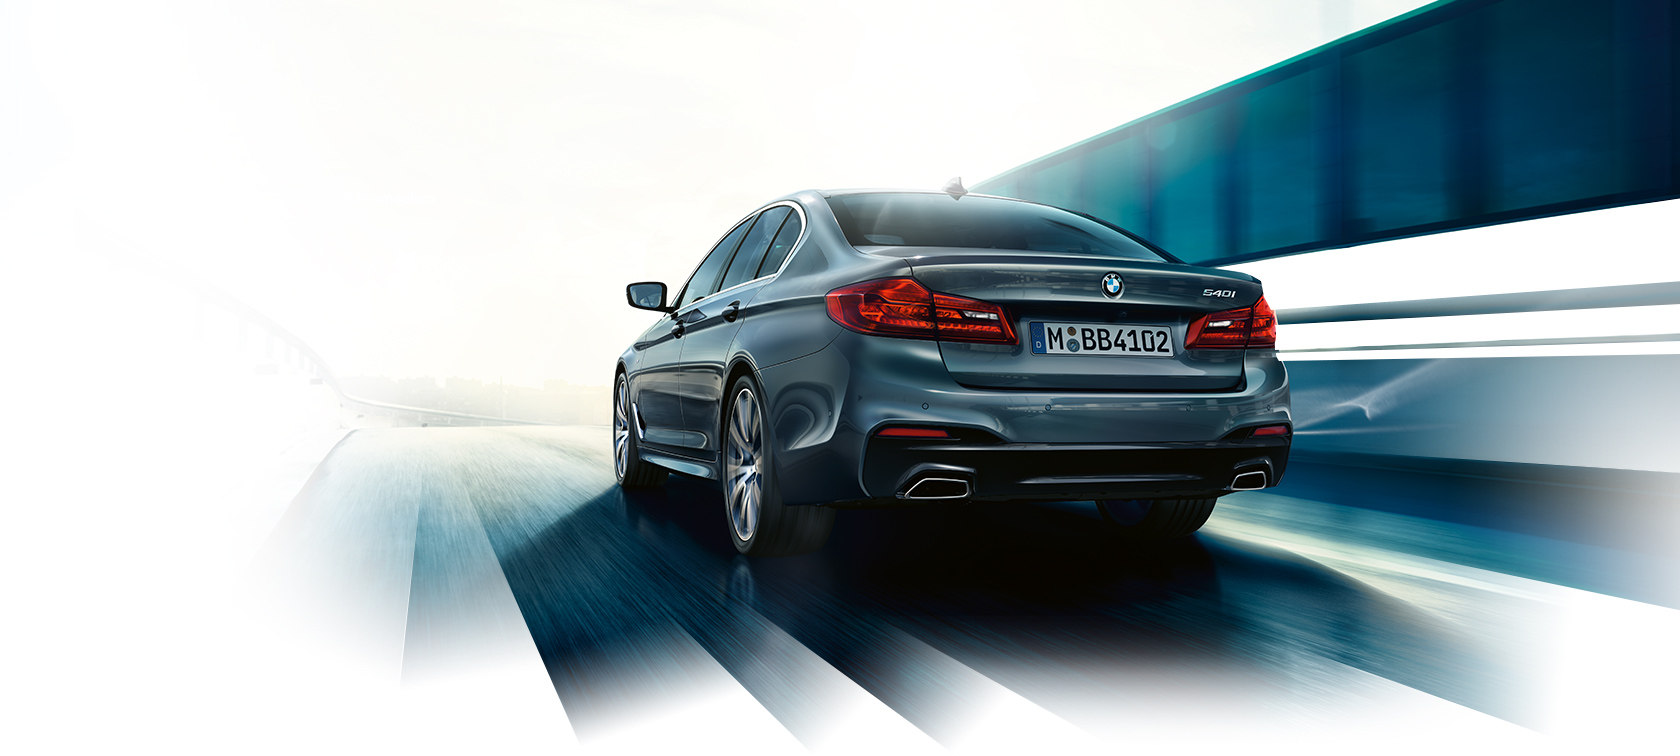 BMW 5 Series Sedan: rear view dirivng dynamics.